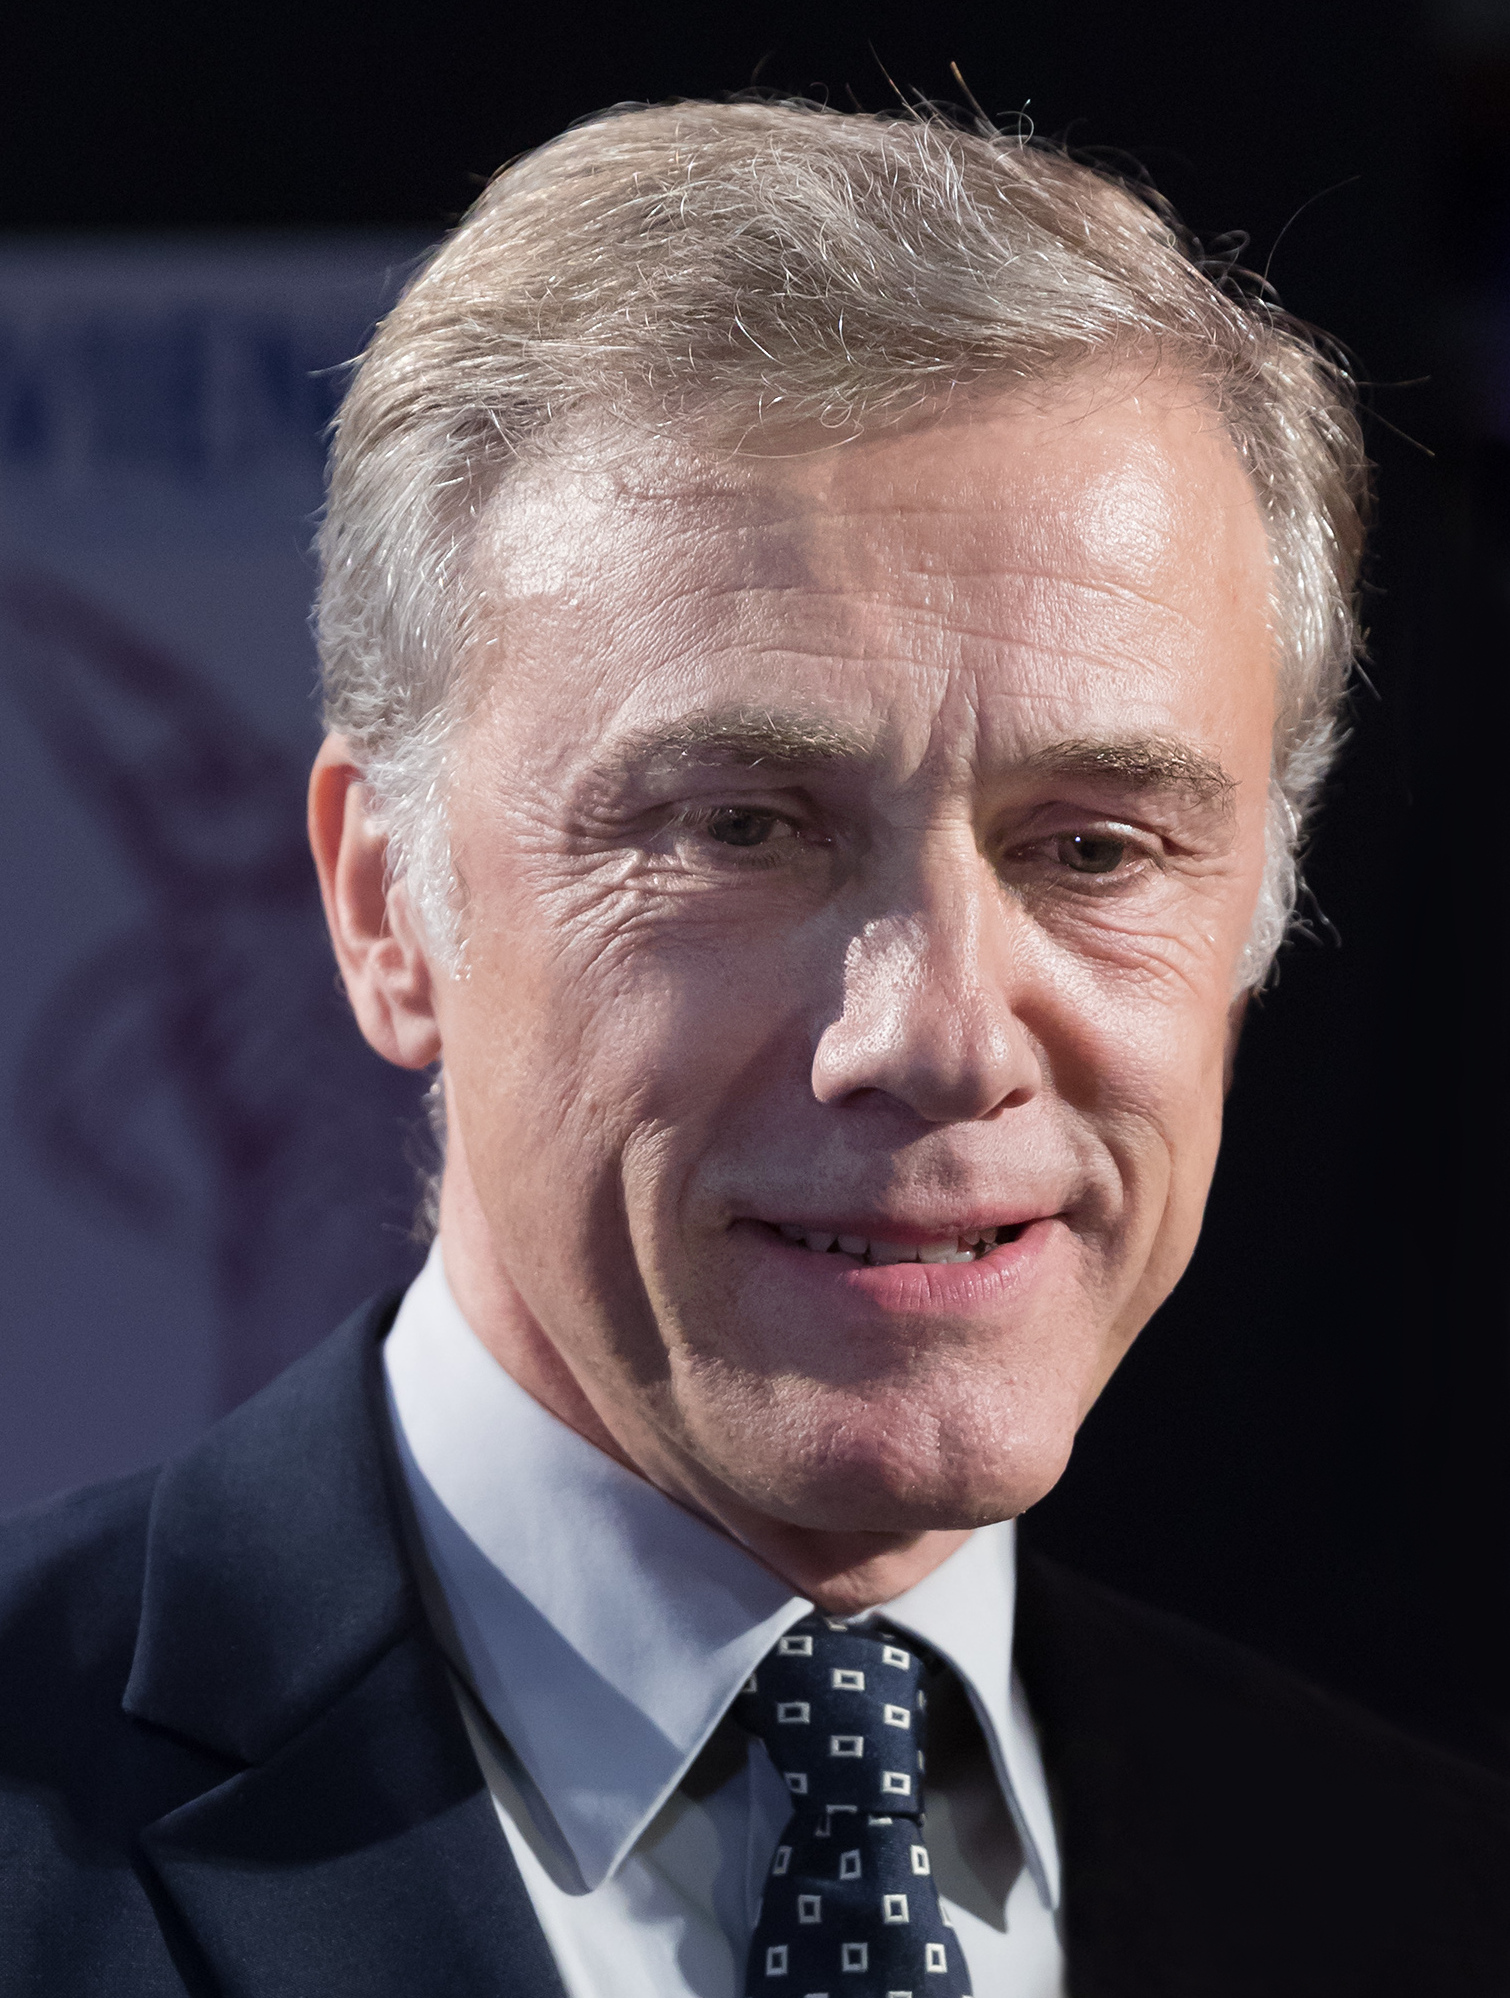 The 61-year old son of father (?) and mother(?) Christoph Waltz in 2018 photo. Christoph Waltz earned a  million dollar salary - leaving the net worth at 20 million in 2018